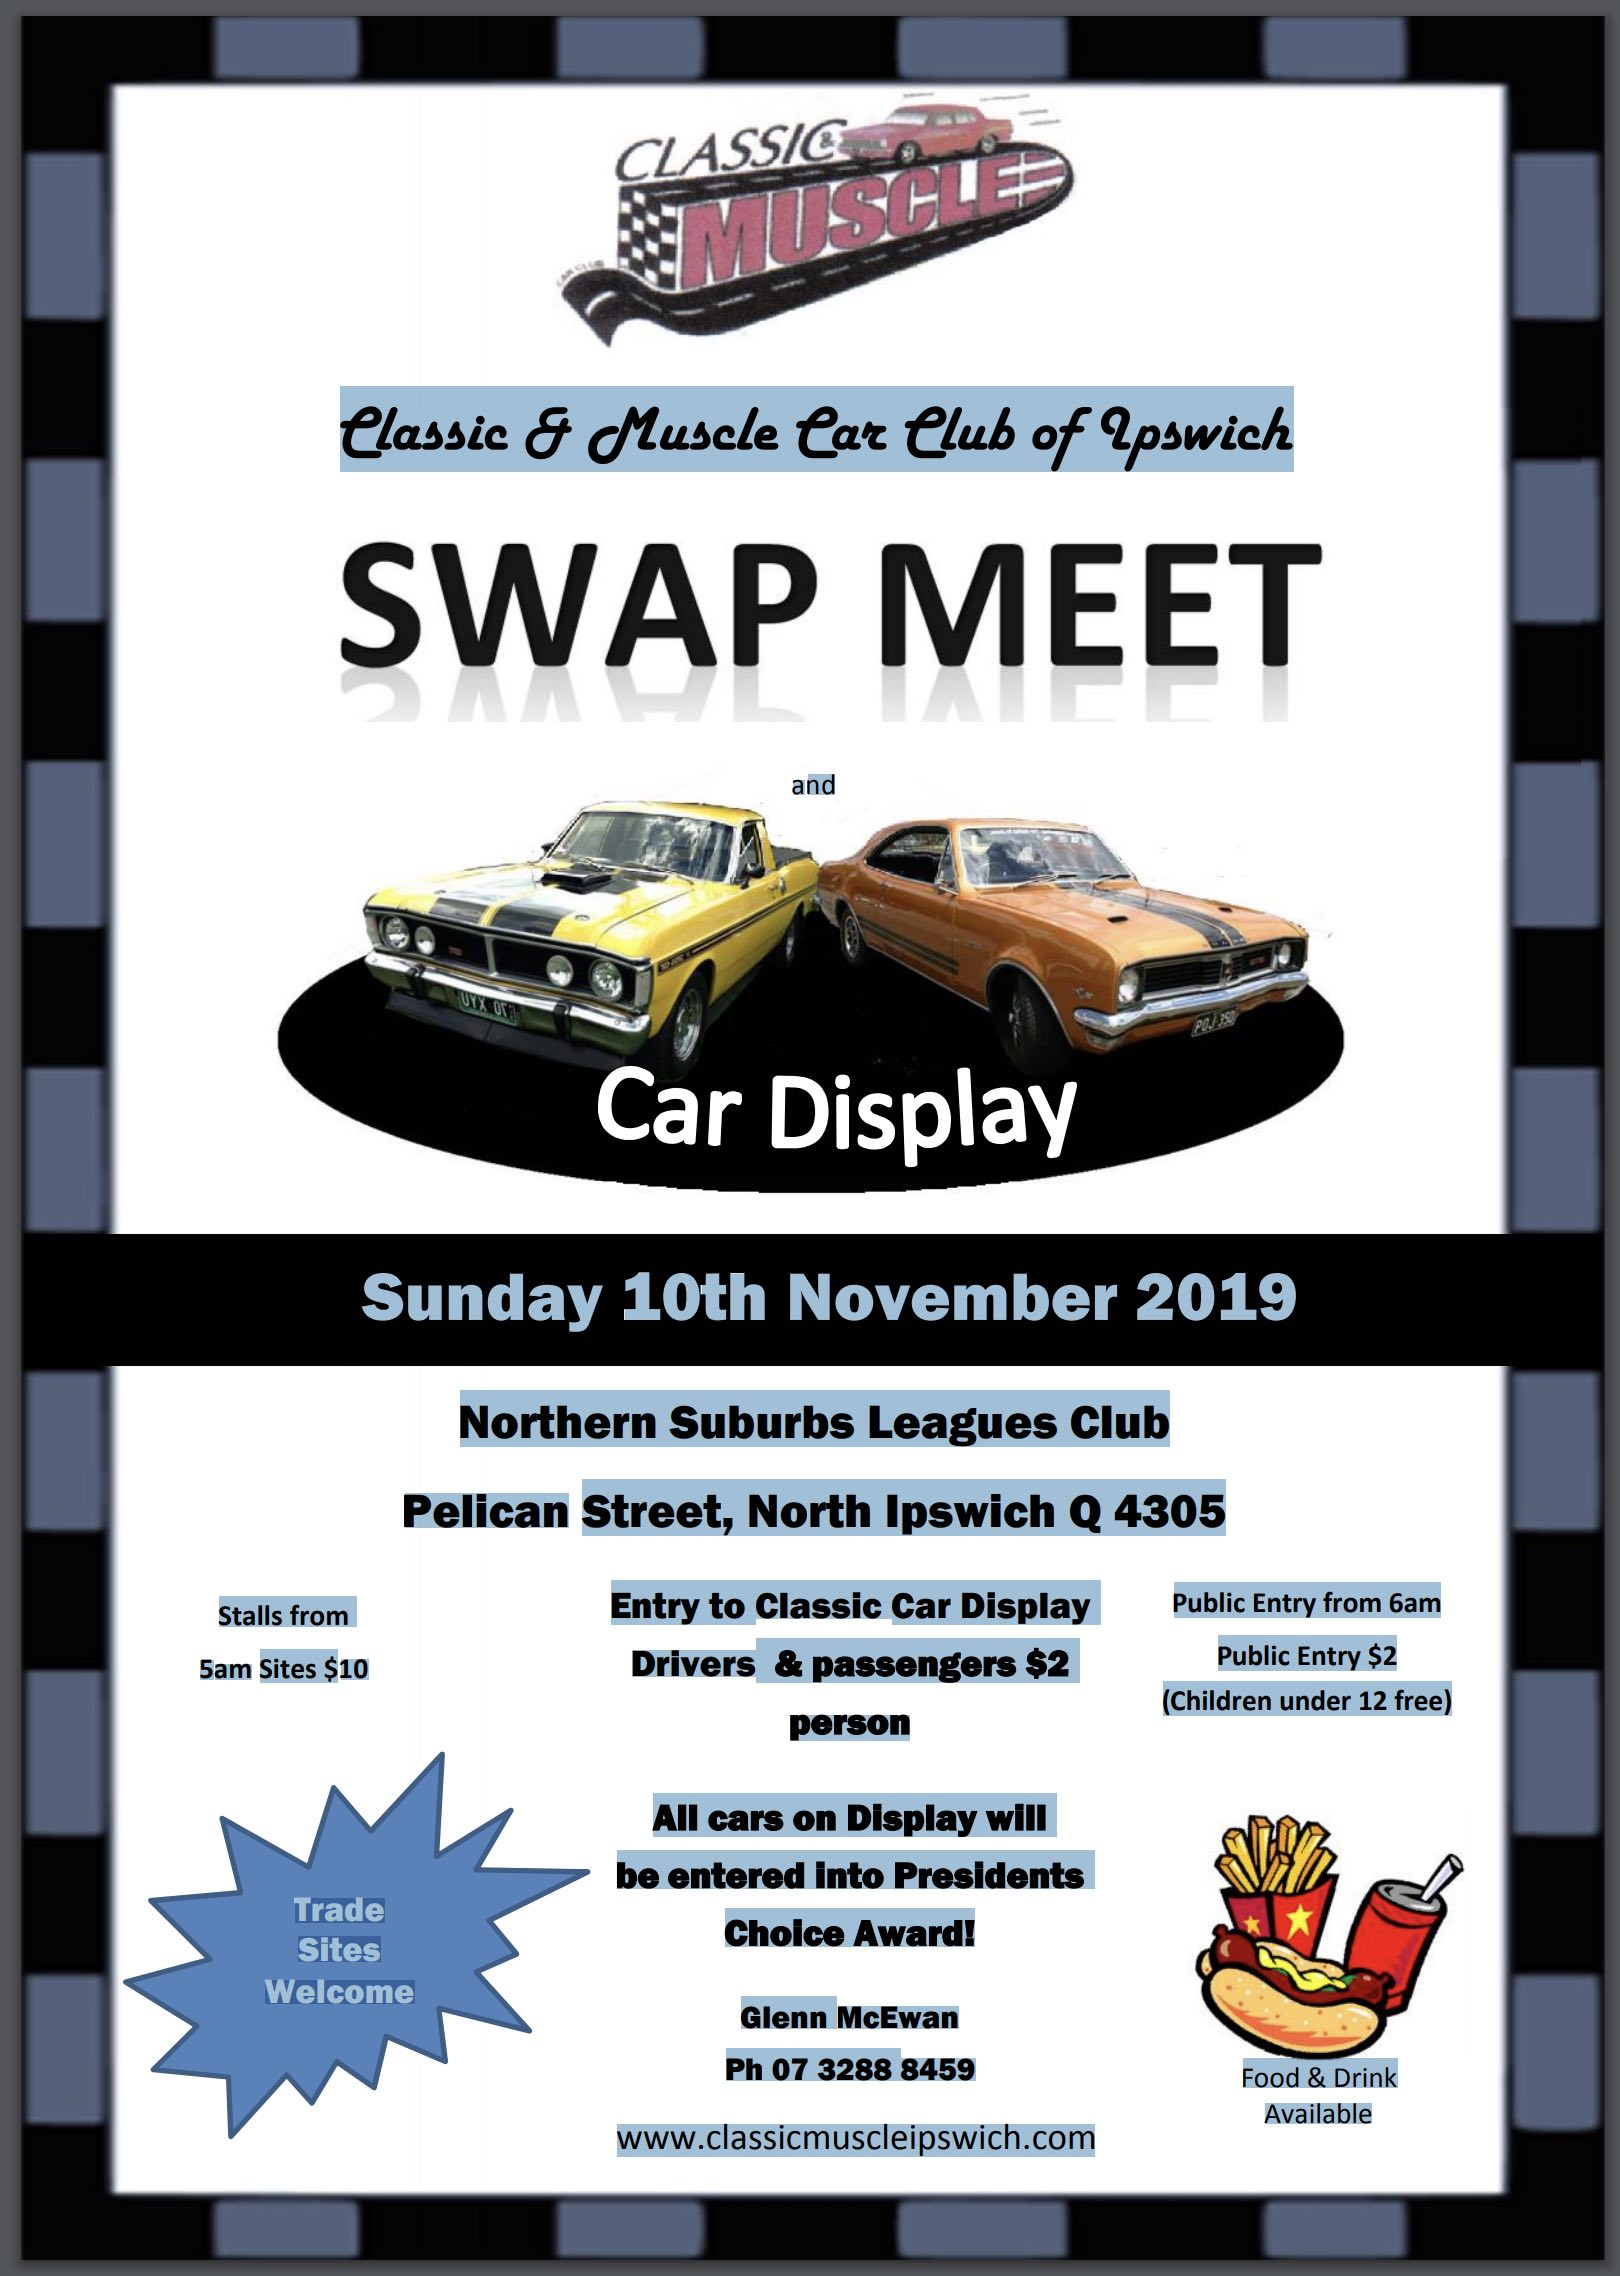 Classic & Muscle Car Club of Ipswich Swapmeet 2019 @ Northern Suburbs Leagues Club | North Ipswich | Queensland | Australia